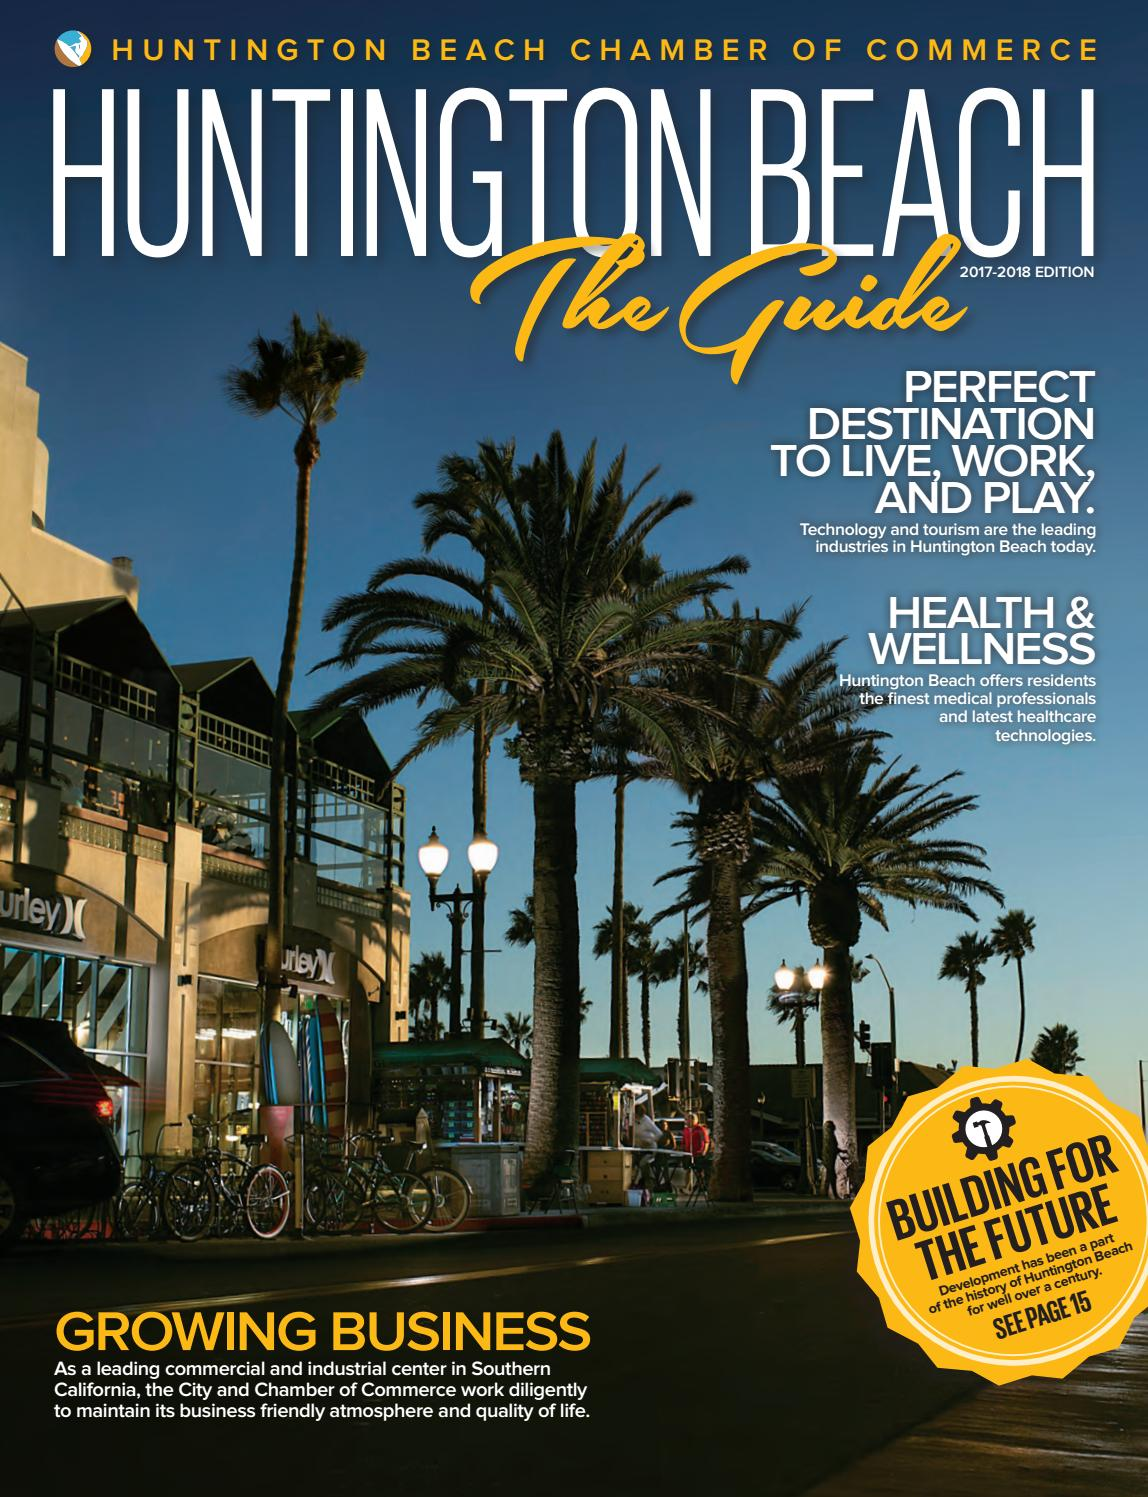 Cucina Alessa Huntington Beach Happy Hour Huntington Beach The Guide 2017 By Chamber Marketing Partners Inc